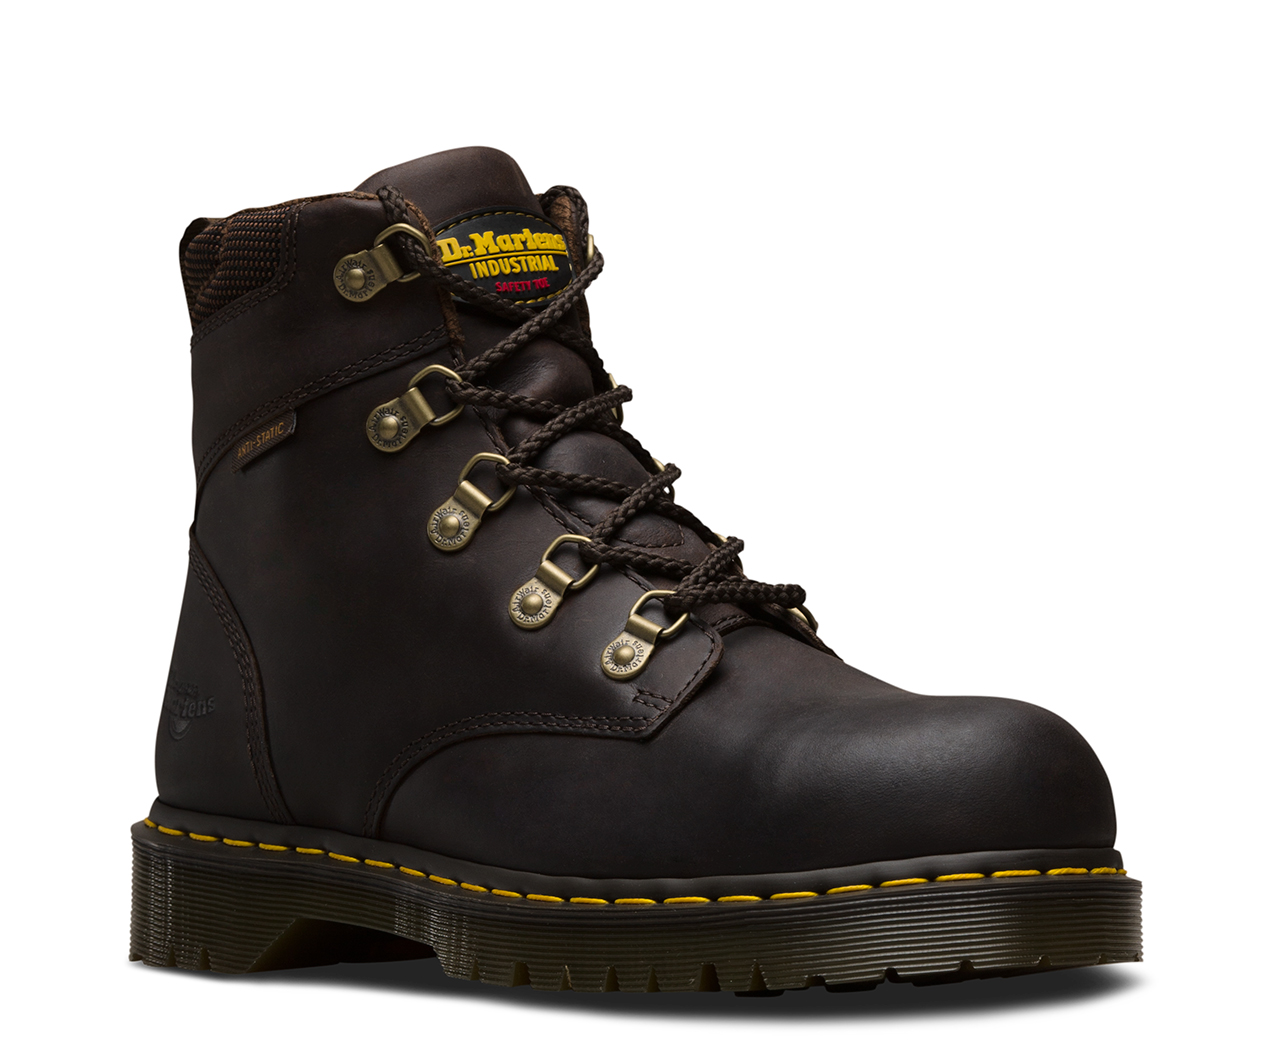 Holkham Work Boots Amp Shoes Official Dr Martens Store